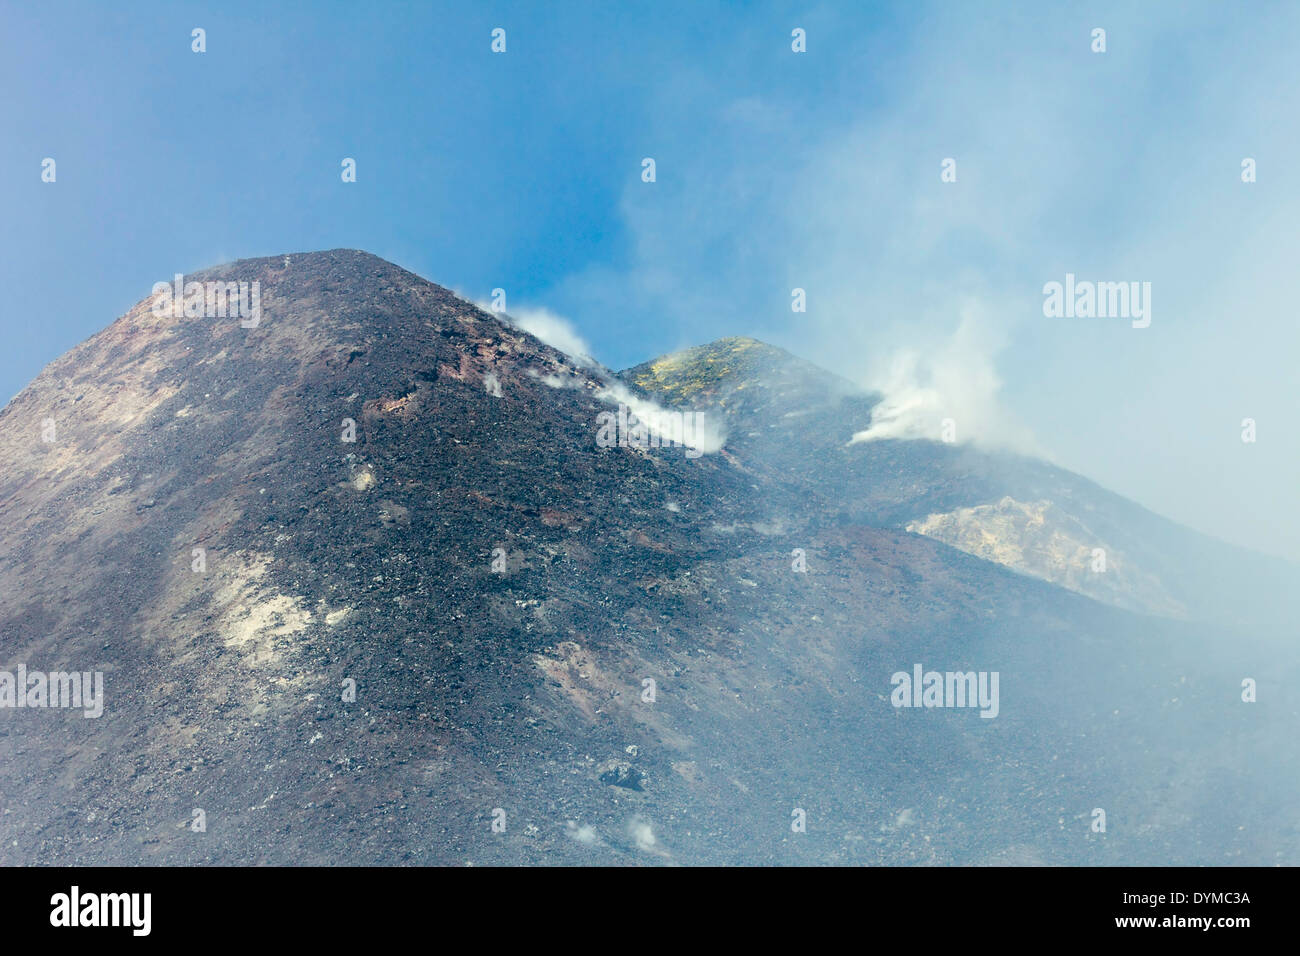 Sulpur, ash & lava rock at the smoking summit of 3350m volcano Mt Etna during an active phase; Mount Etna, Sicily, Italy - Stock Image